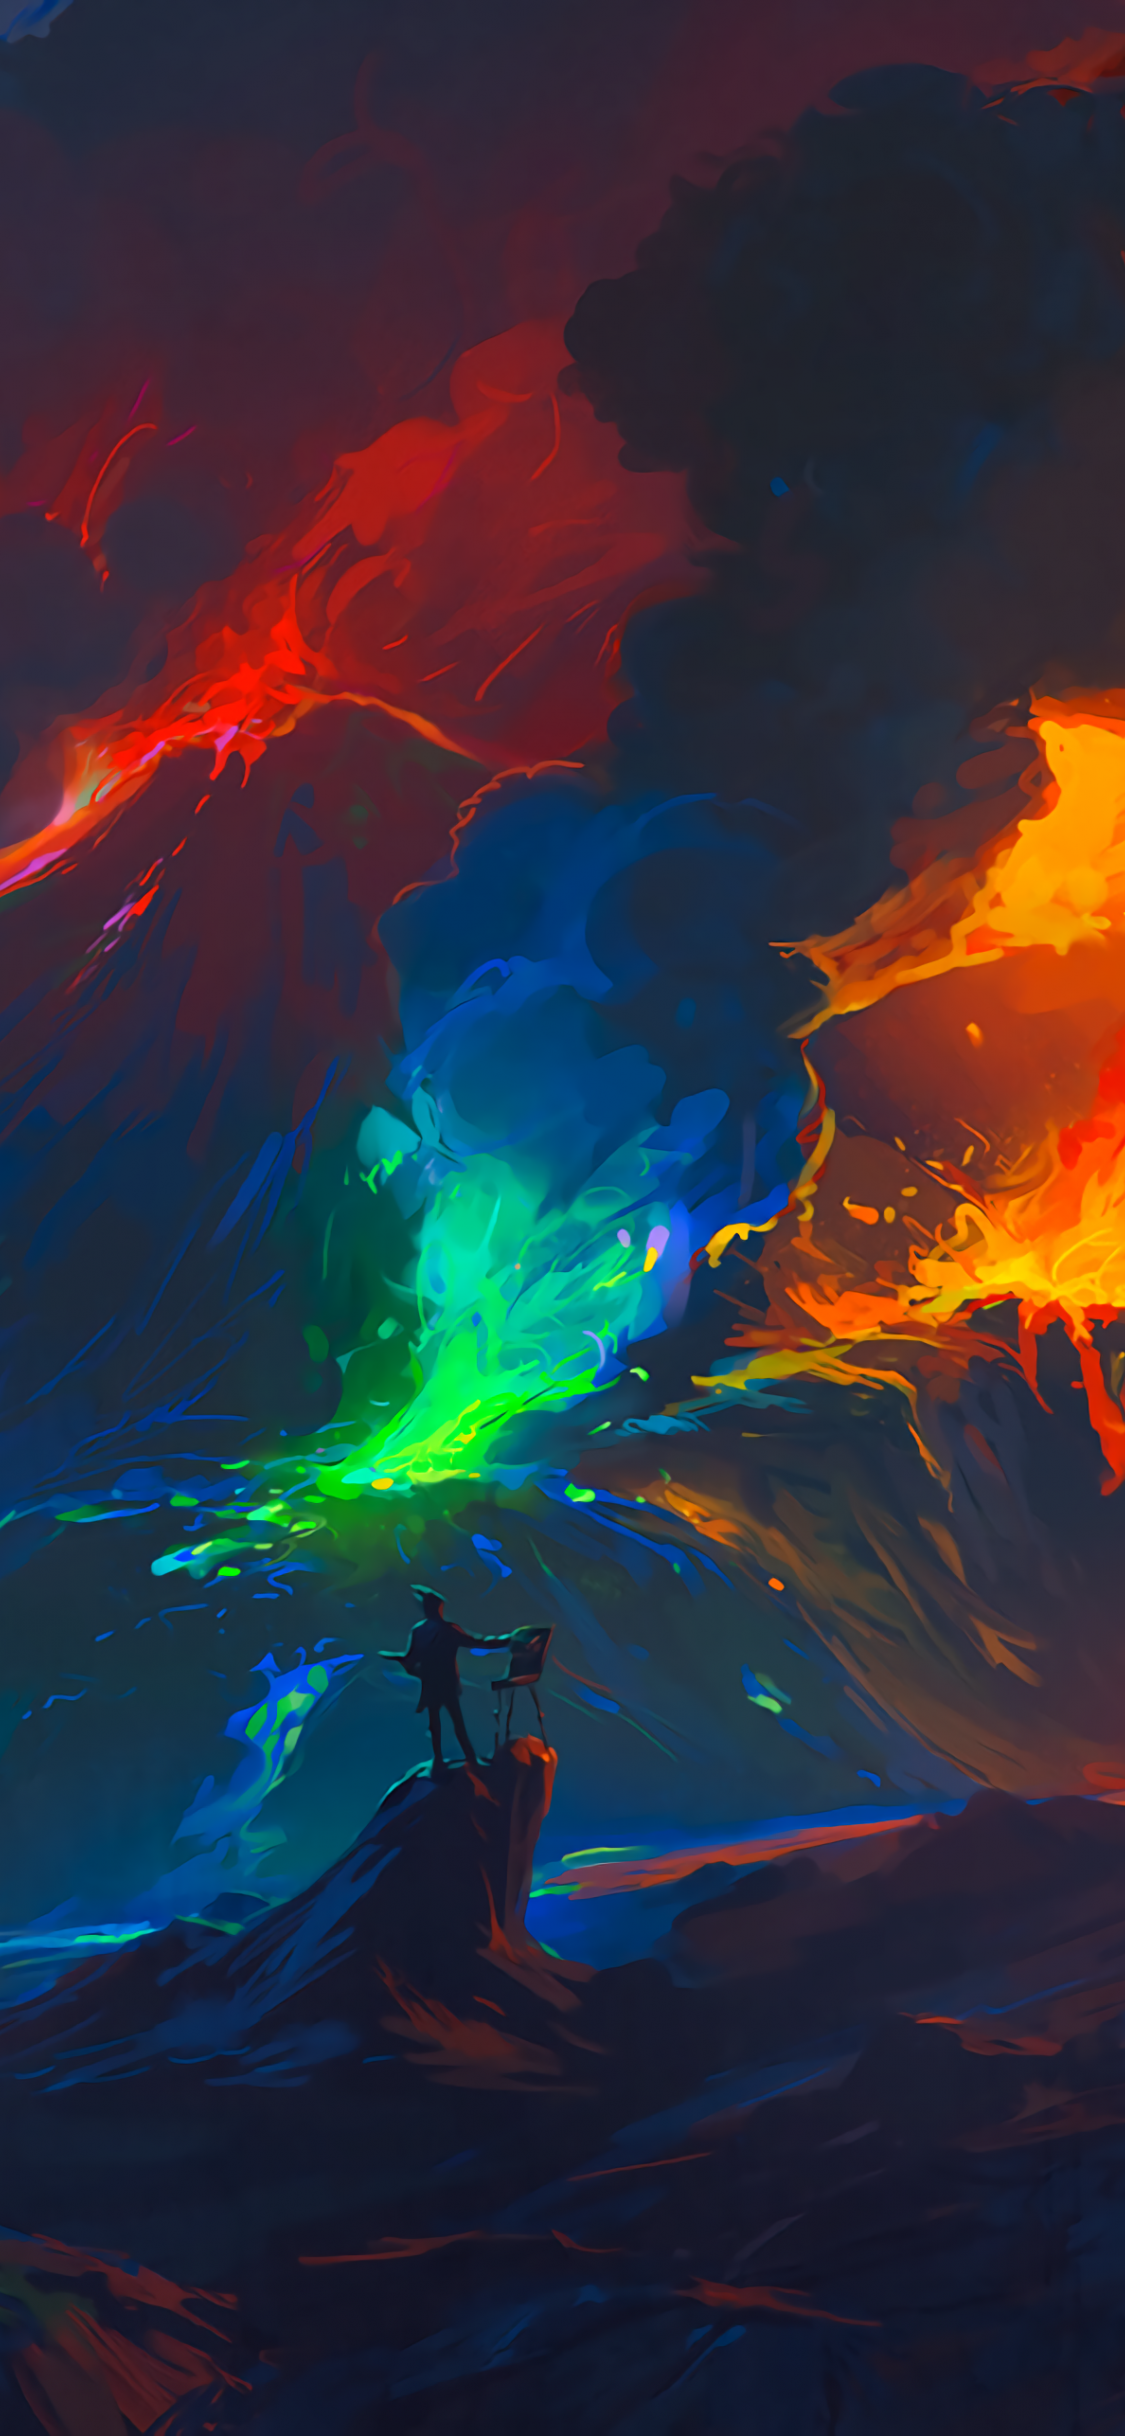 Artist, volcano eruption, waves, colorful, fantasy, art